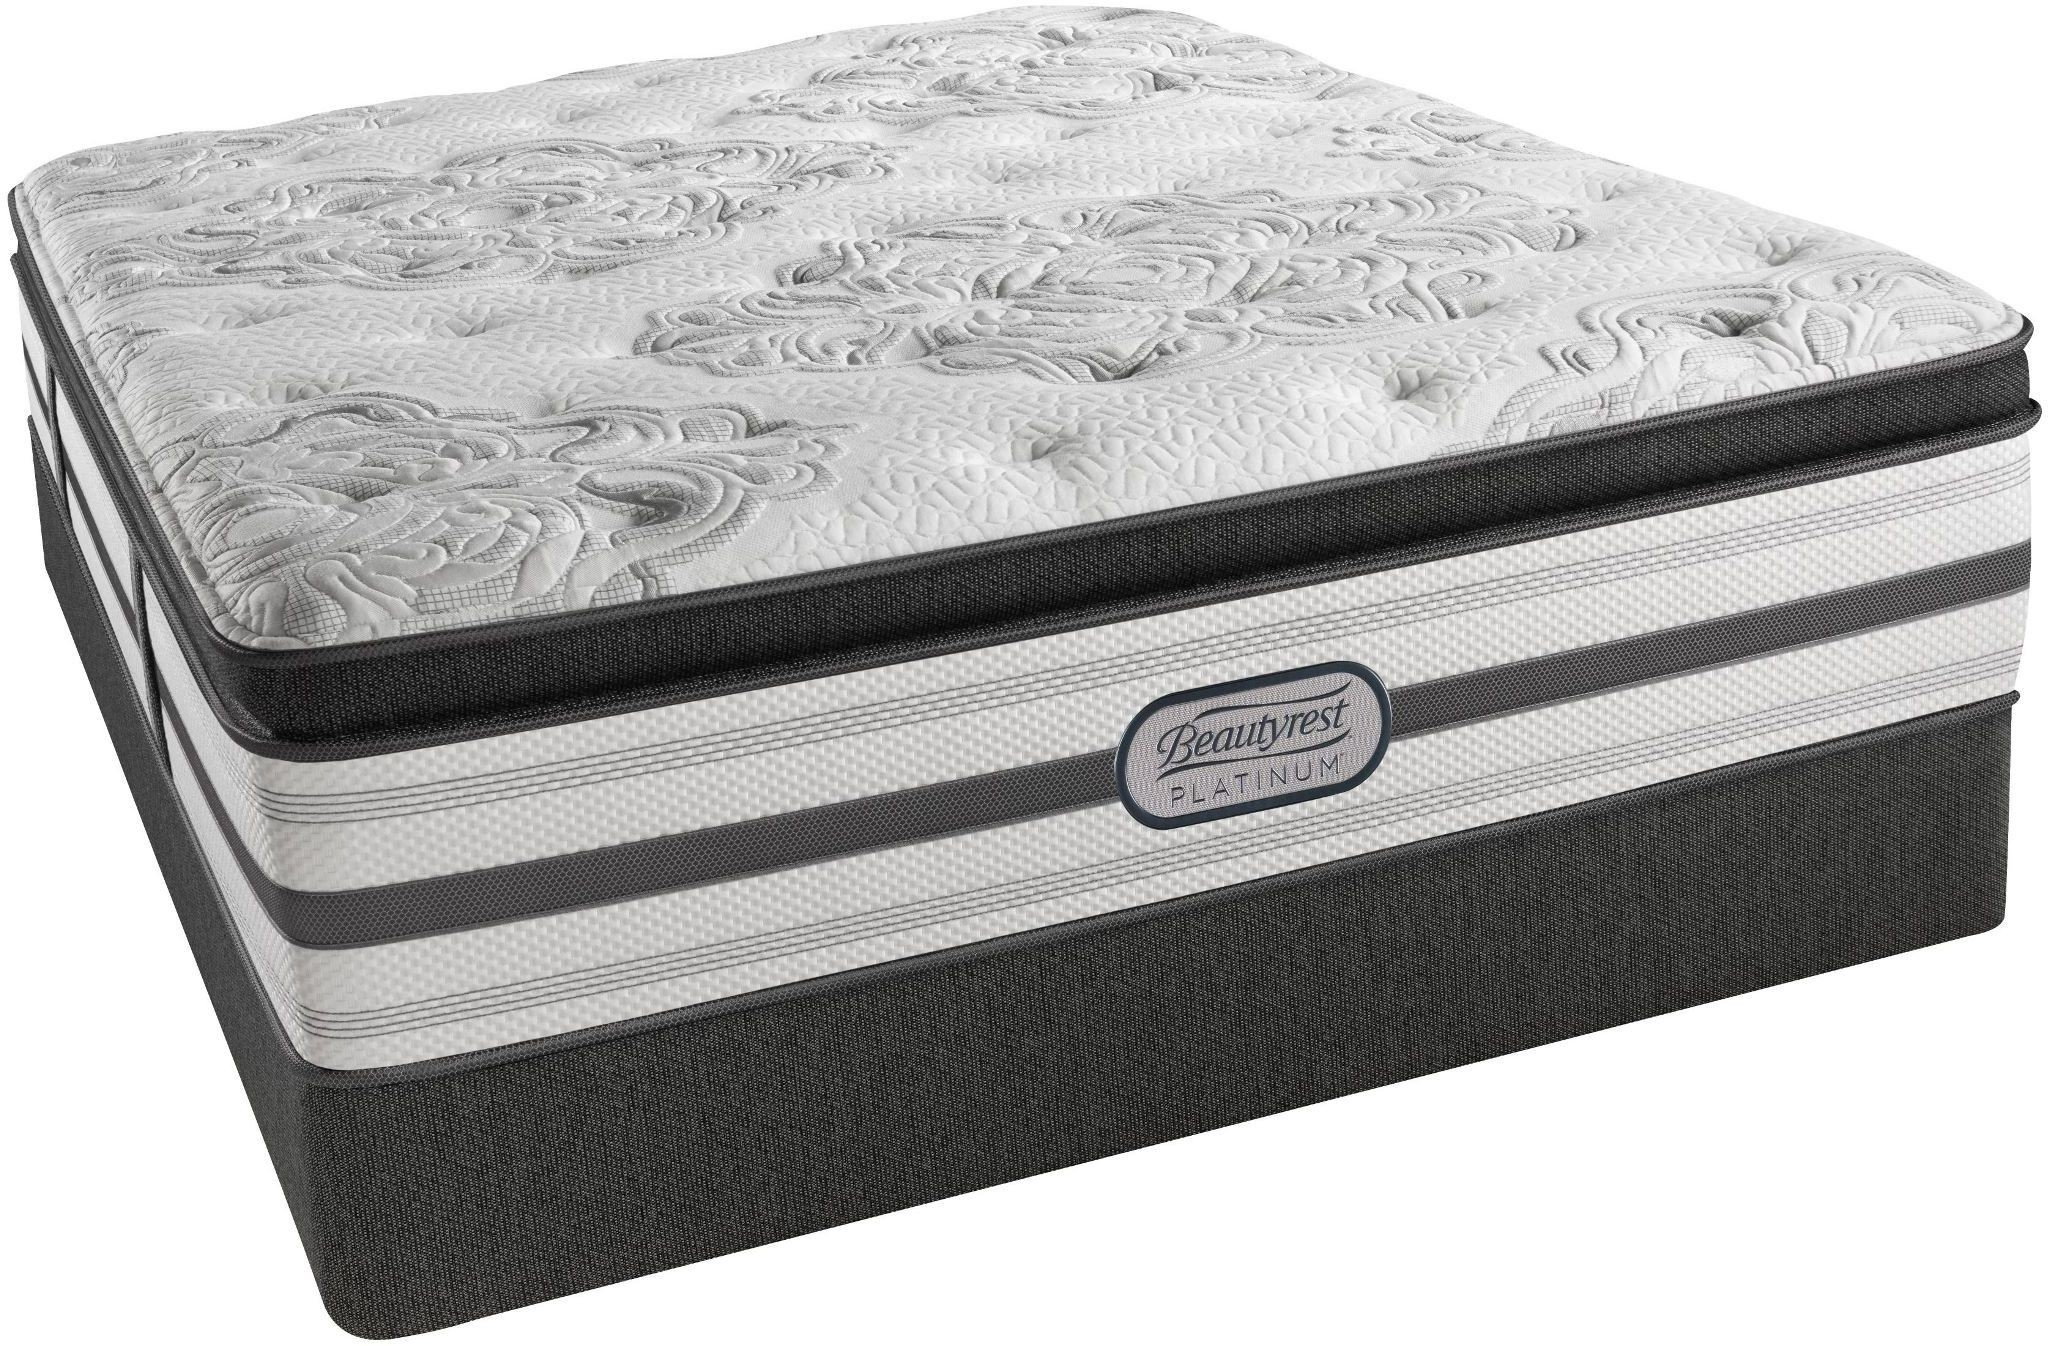 beautyrest recharge platinum fandago pillow top luxury firm twin size mattress from simmons. Black Bedroom Furniture Sets. Home Design Ideas